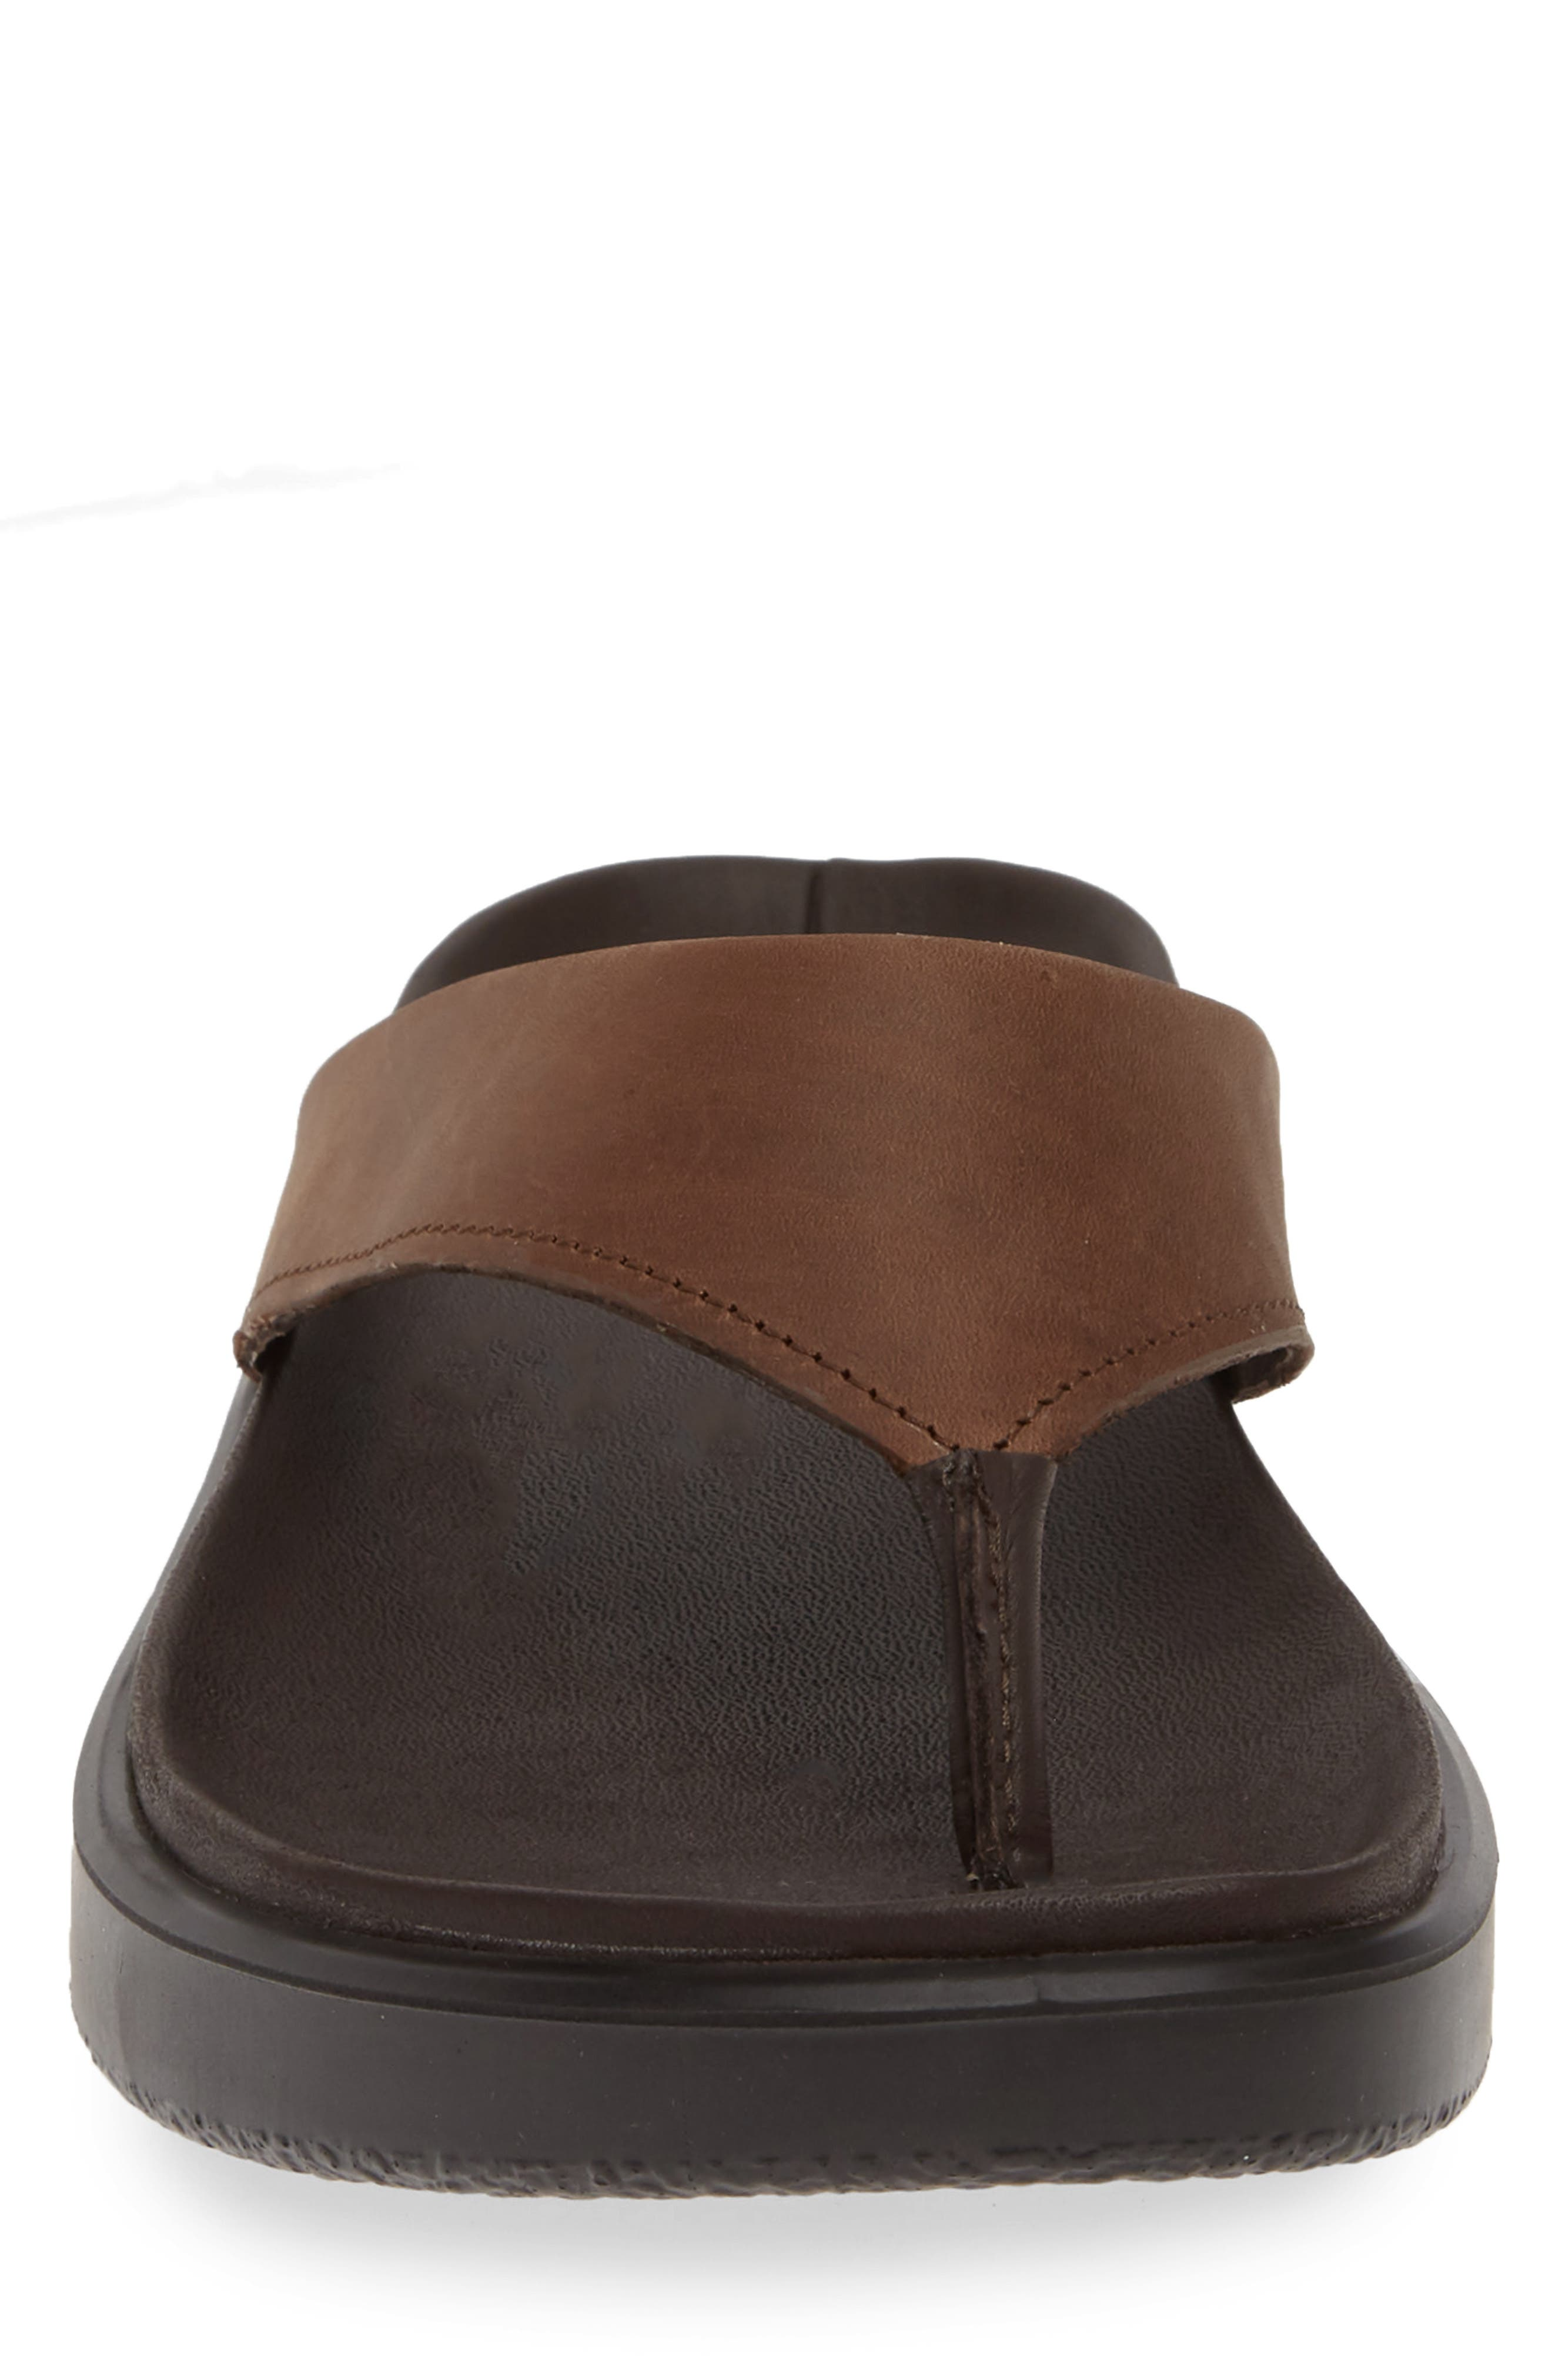 ECCO, Flowt LX Flip Flop, Alternate thumbnail 4, color, COCOA BROWN OILED NUBUCK